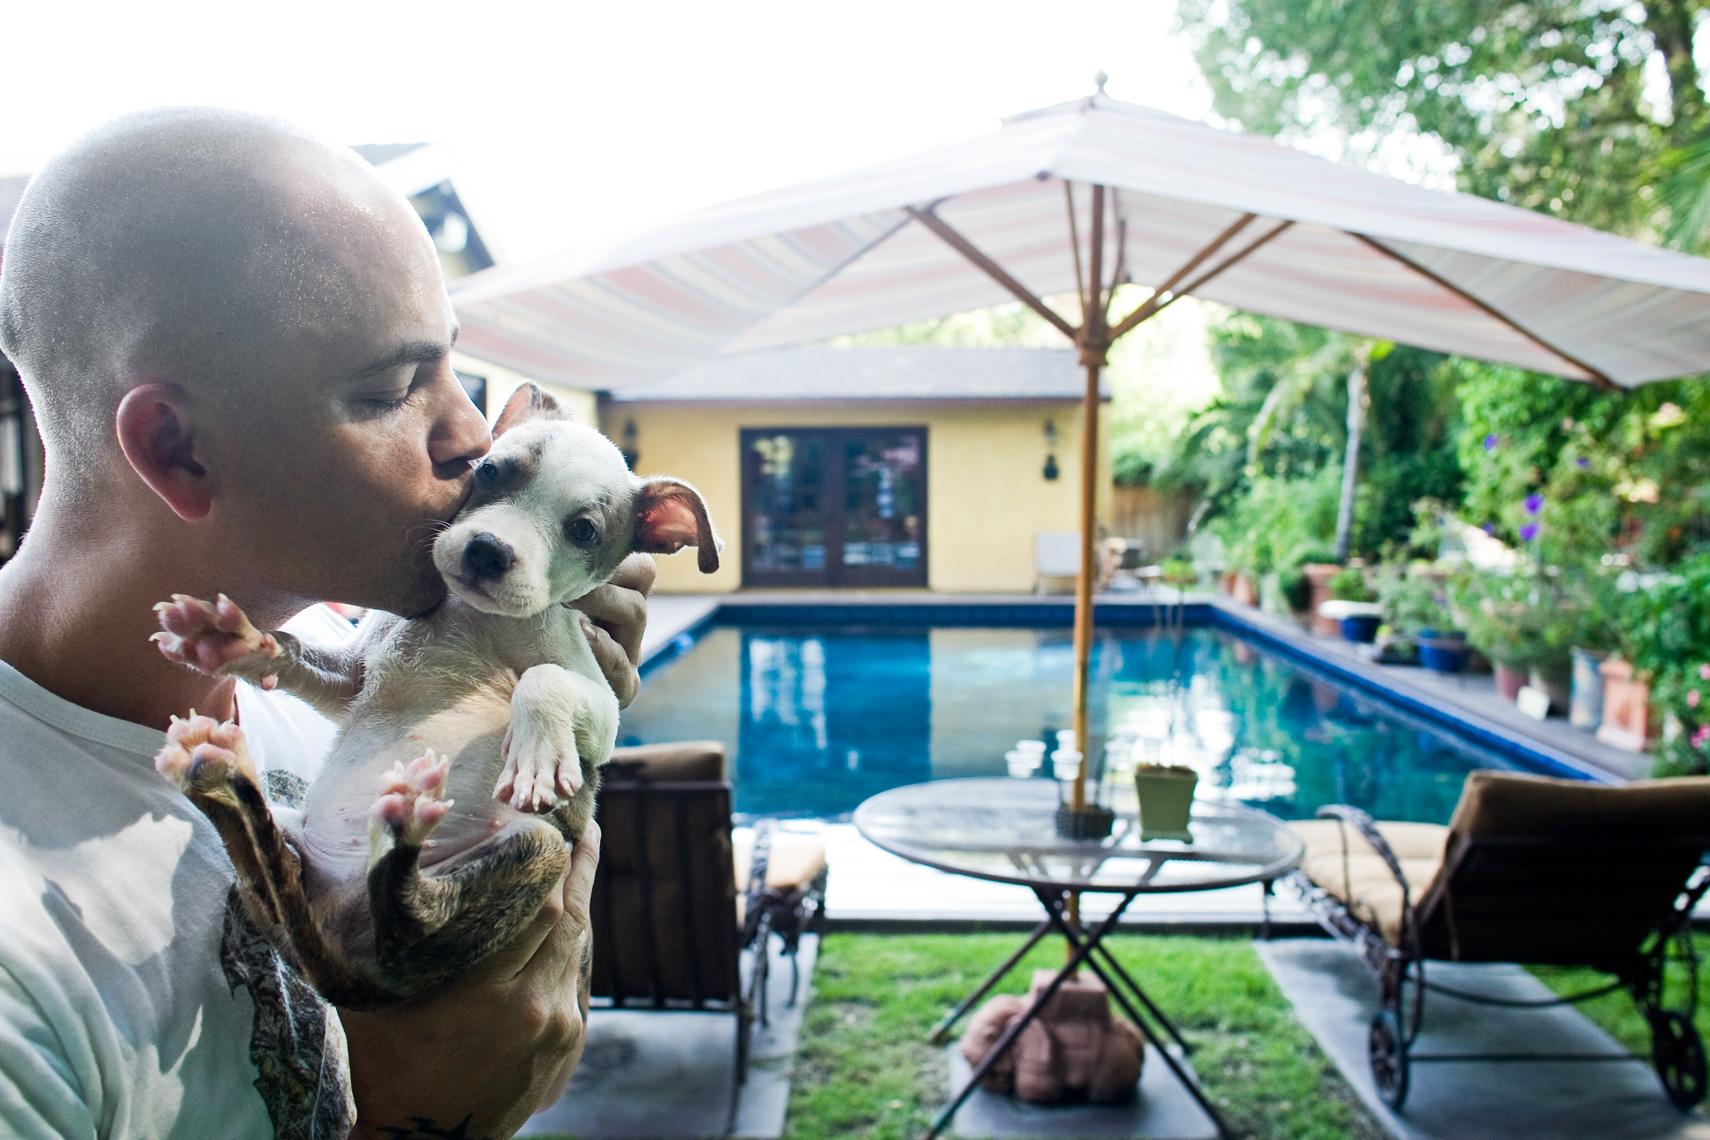 Los Angeles Dog Photography, Michael Brian, Tyson Kilmer kisses Pit Bull puppy, Dog Trainer